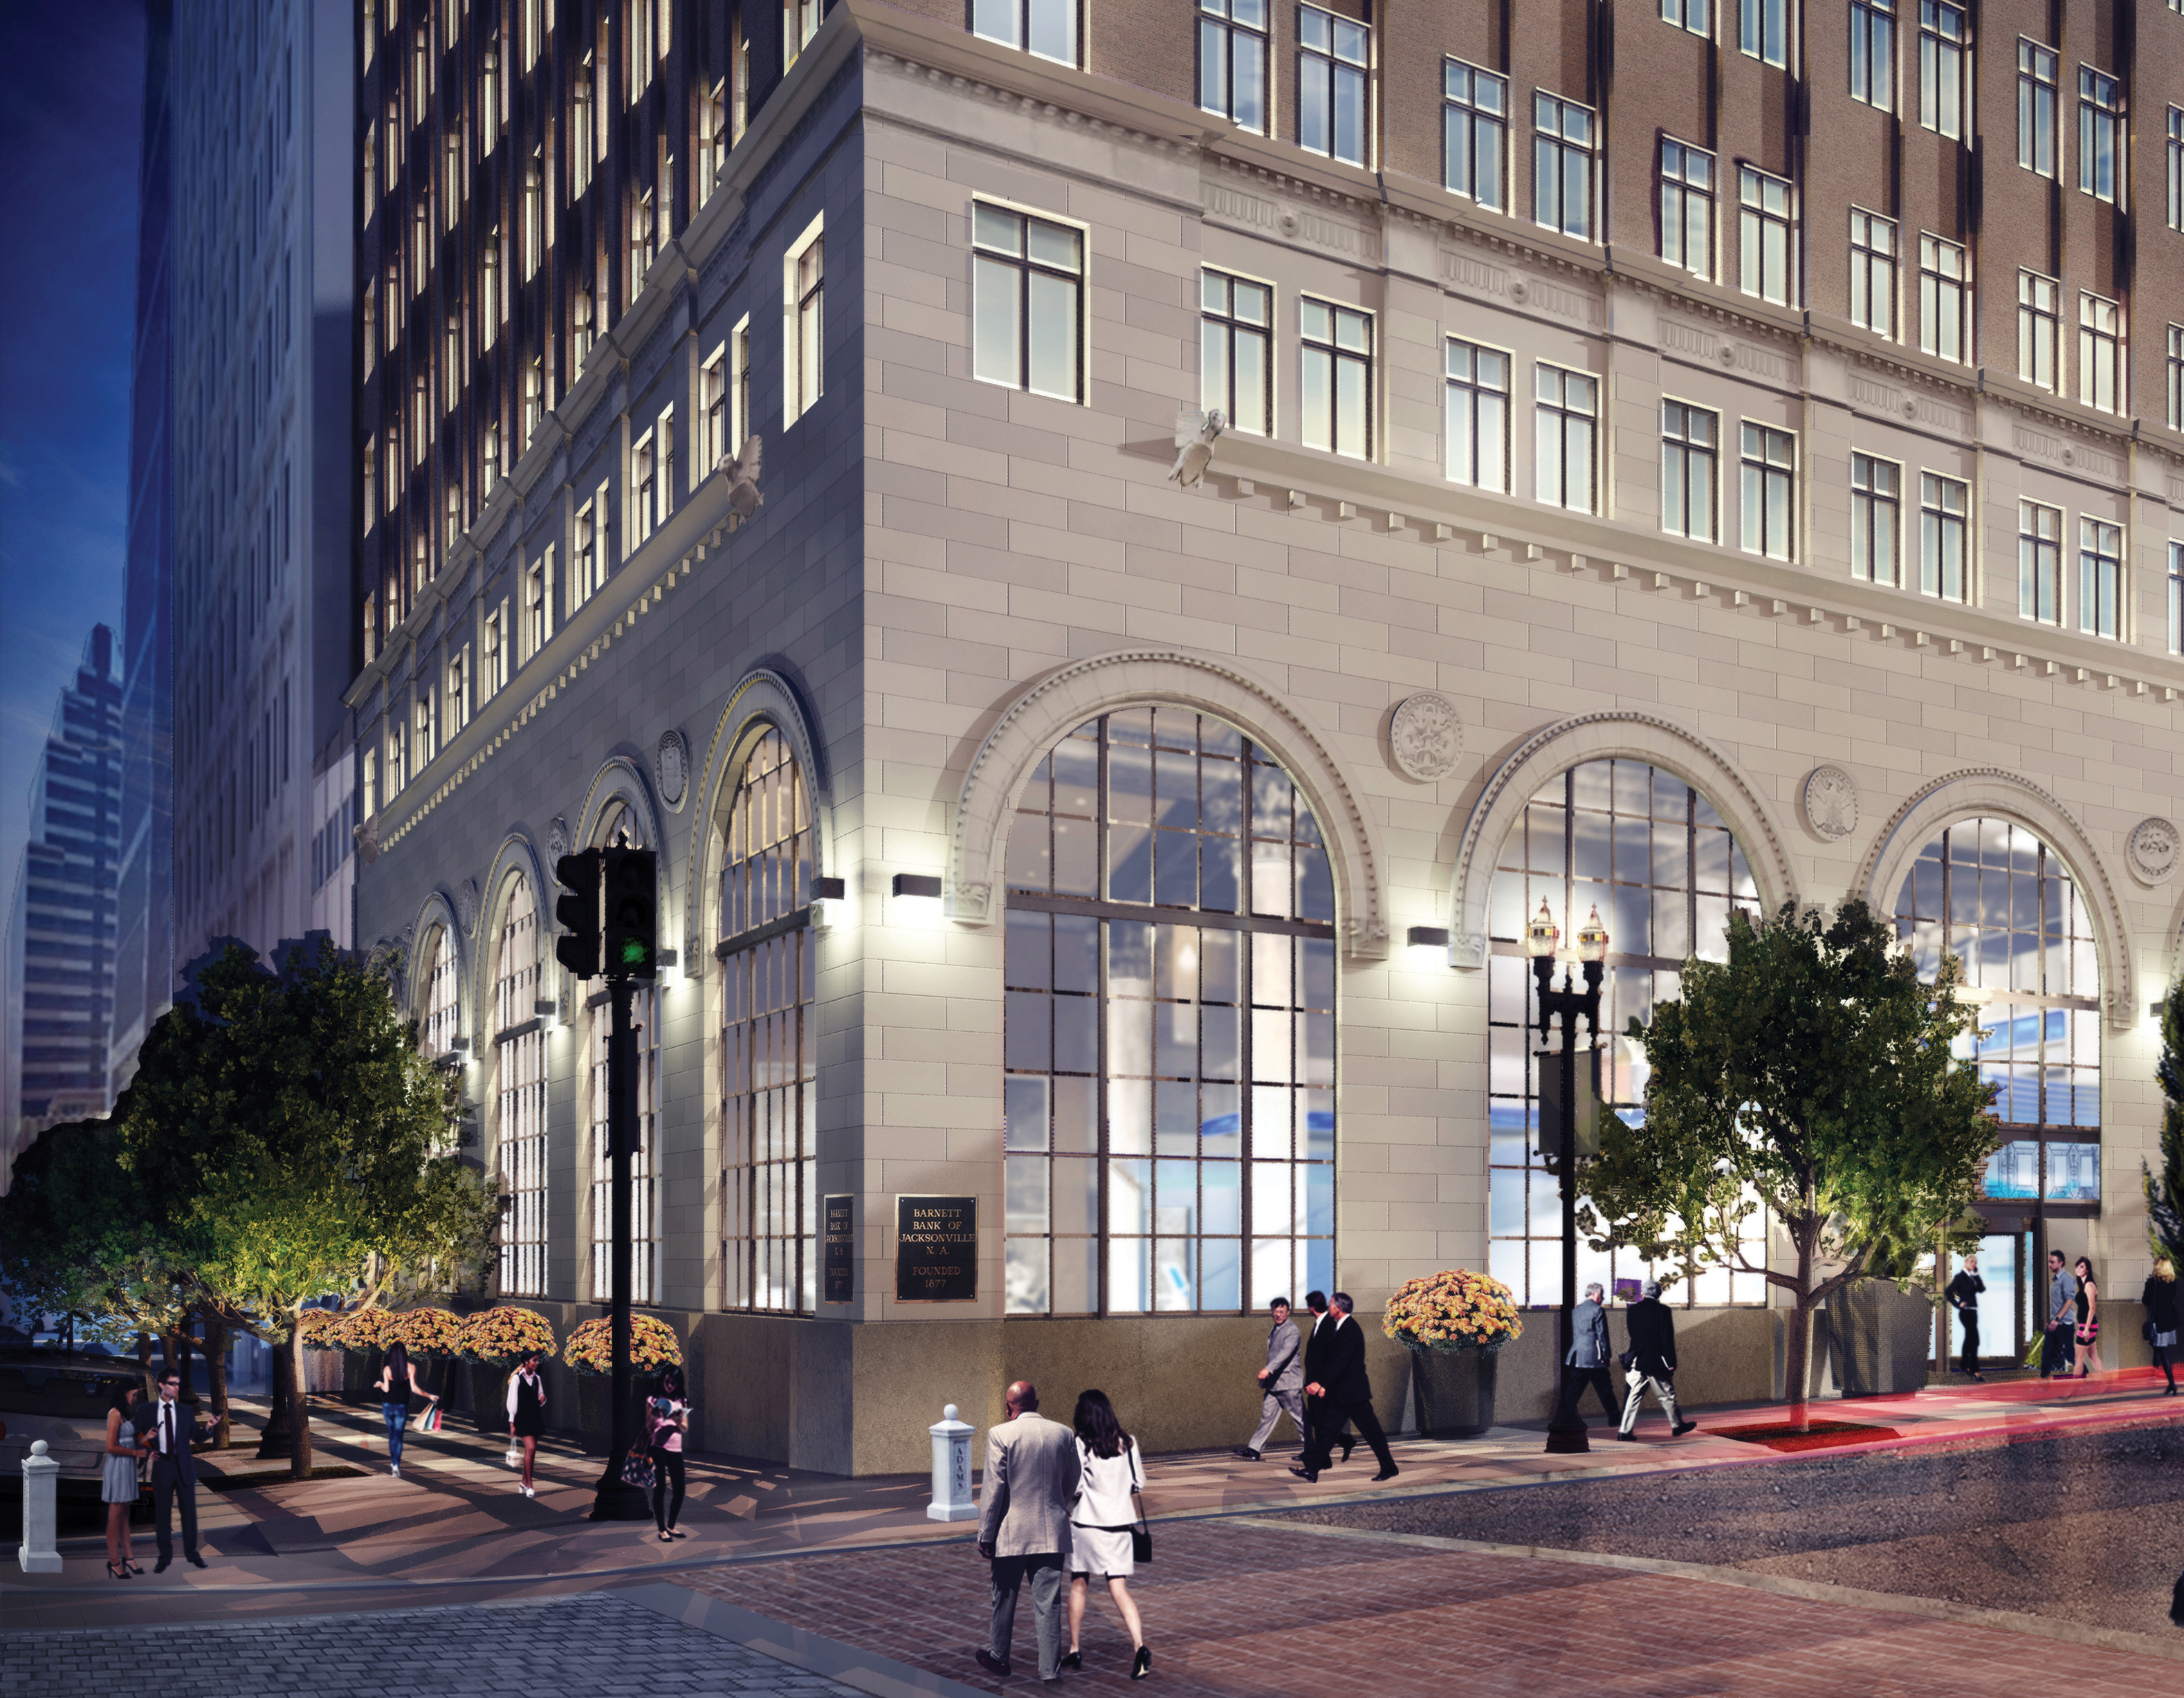 A rendering of the exterior of the new Center for Entrepreneurship that will be located in downtown Jacksonville